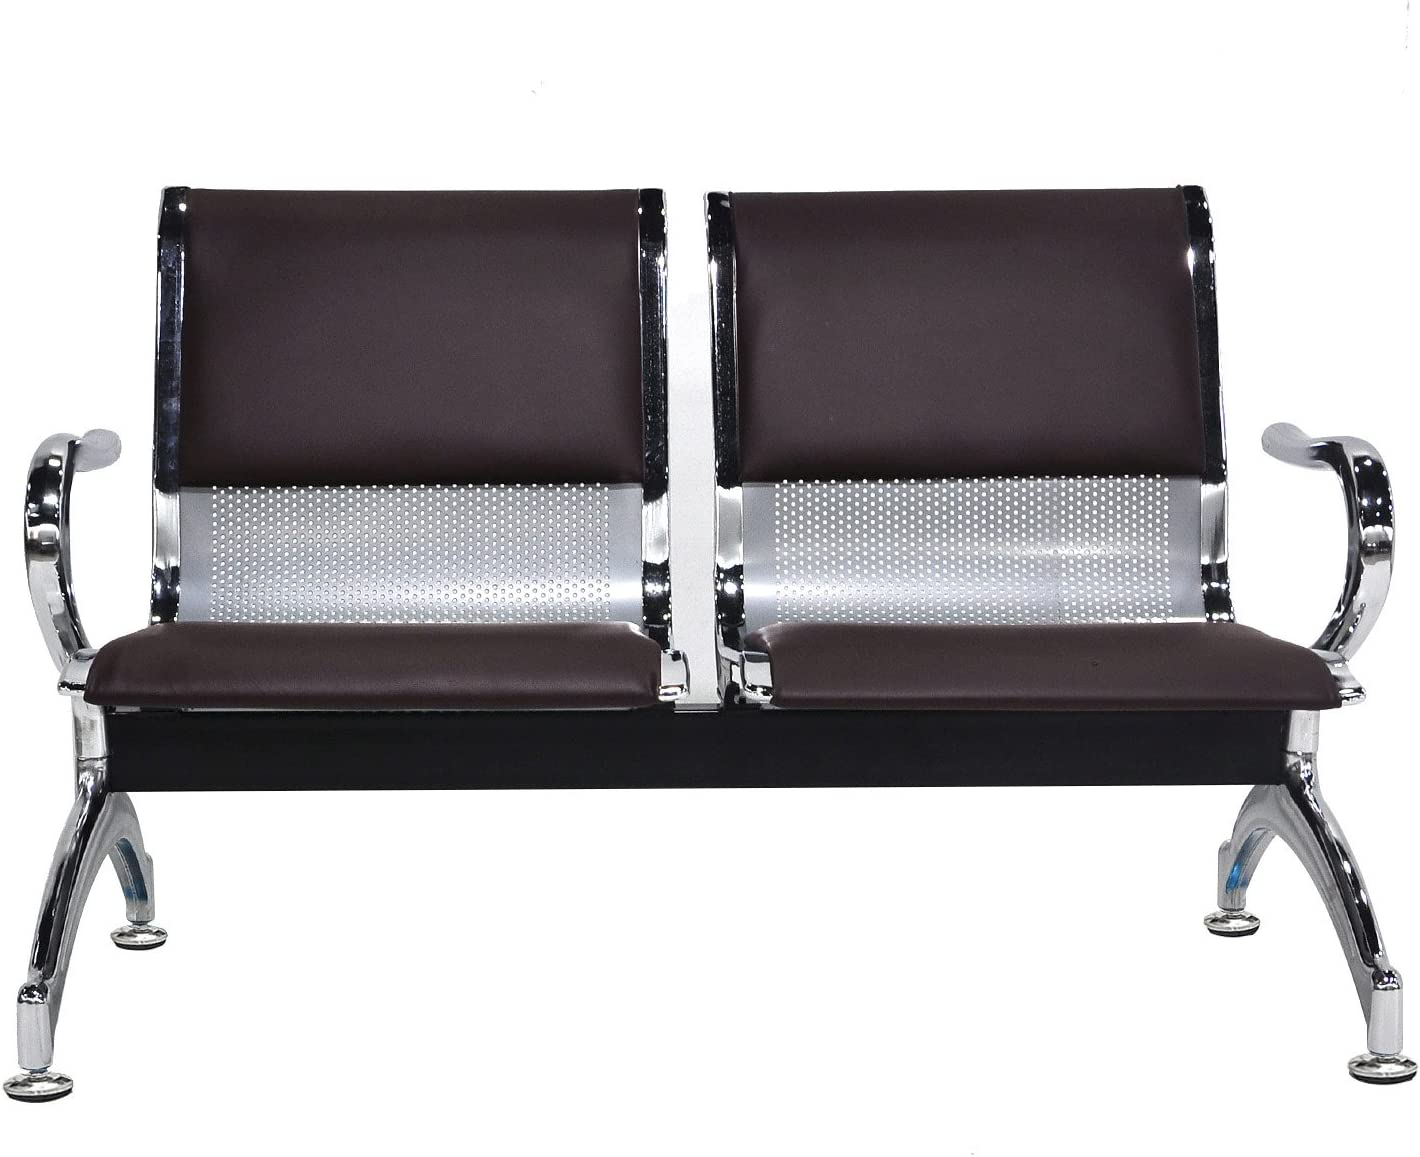 WONLINE 2-Seat Guest Airport Reception Waiting Room Chair Lobby Garden Salon Barber Benches Bank Hall Hospital Waiting Bench Furniture Brown PVC Leather Cushion